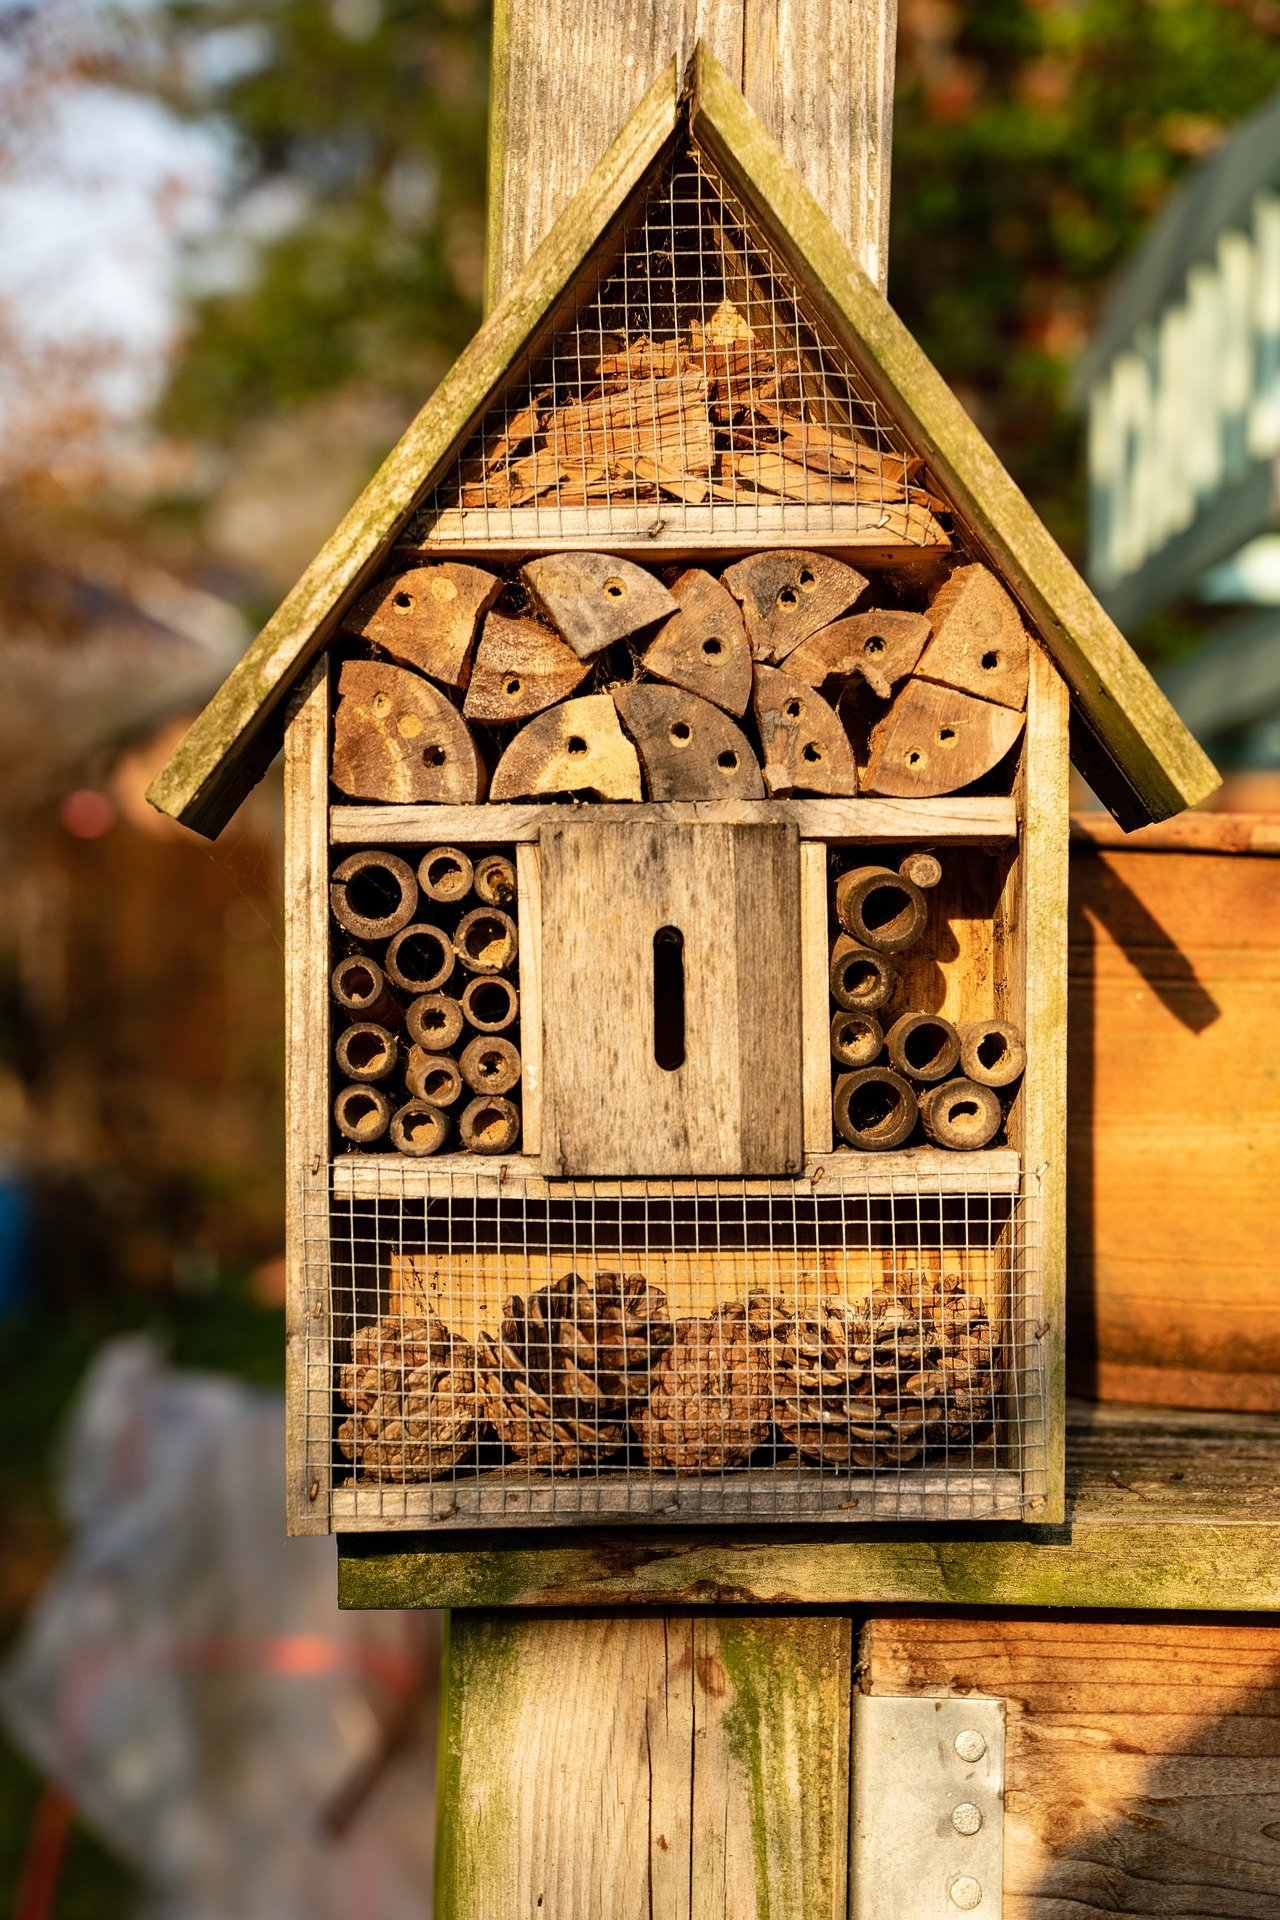 Bee hotel on post.